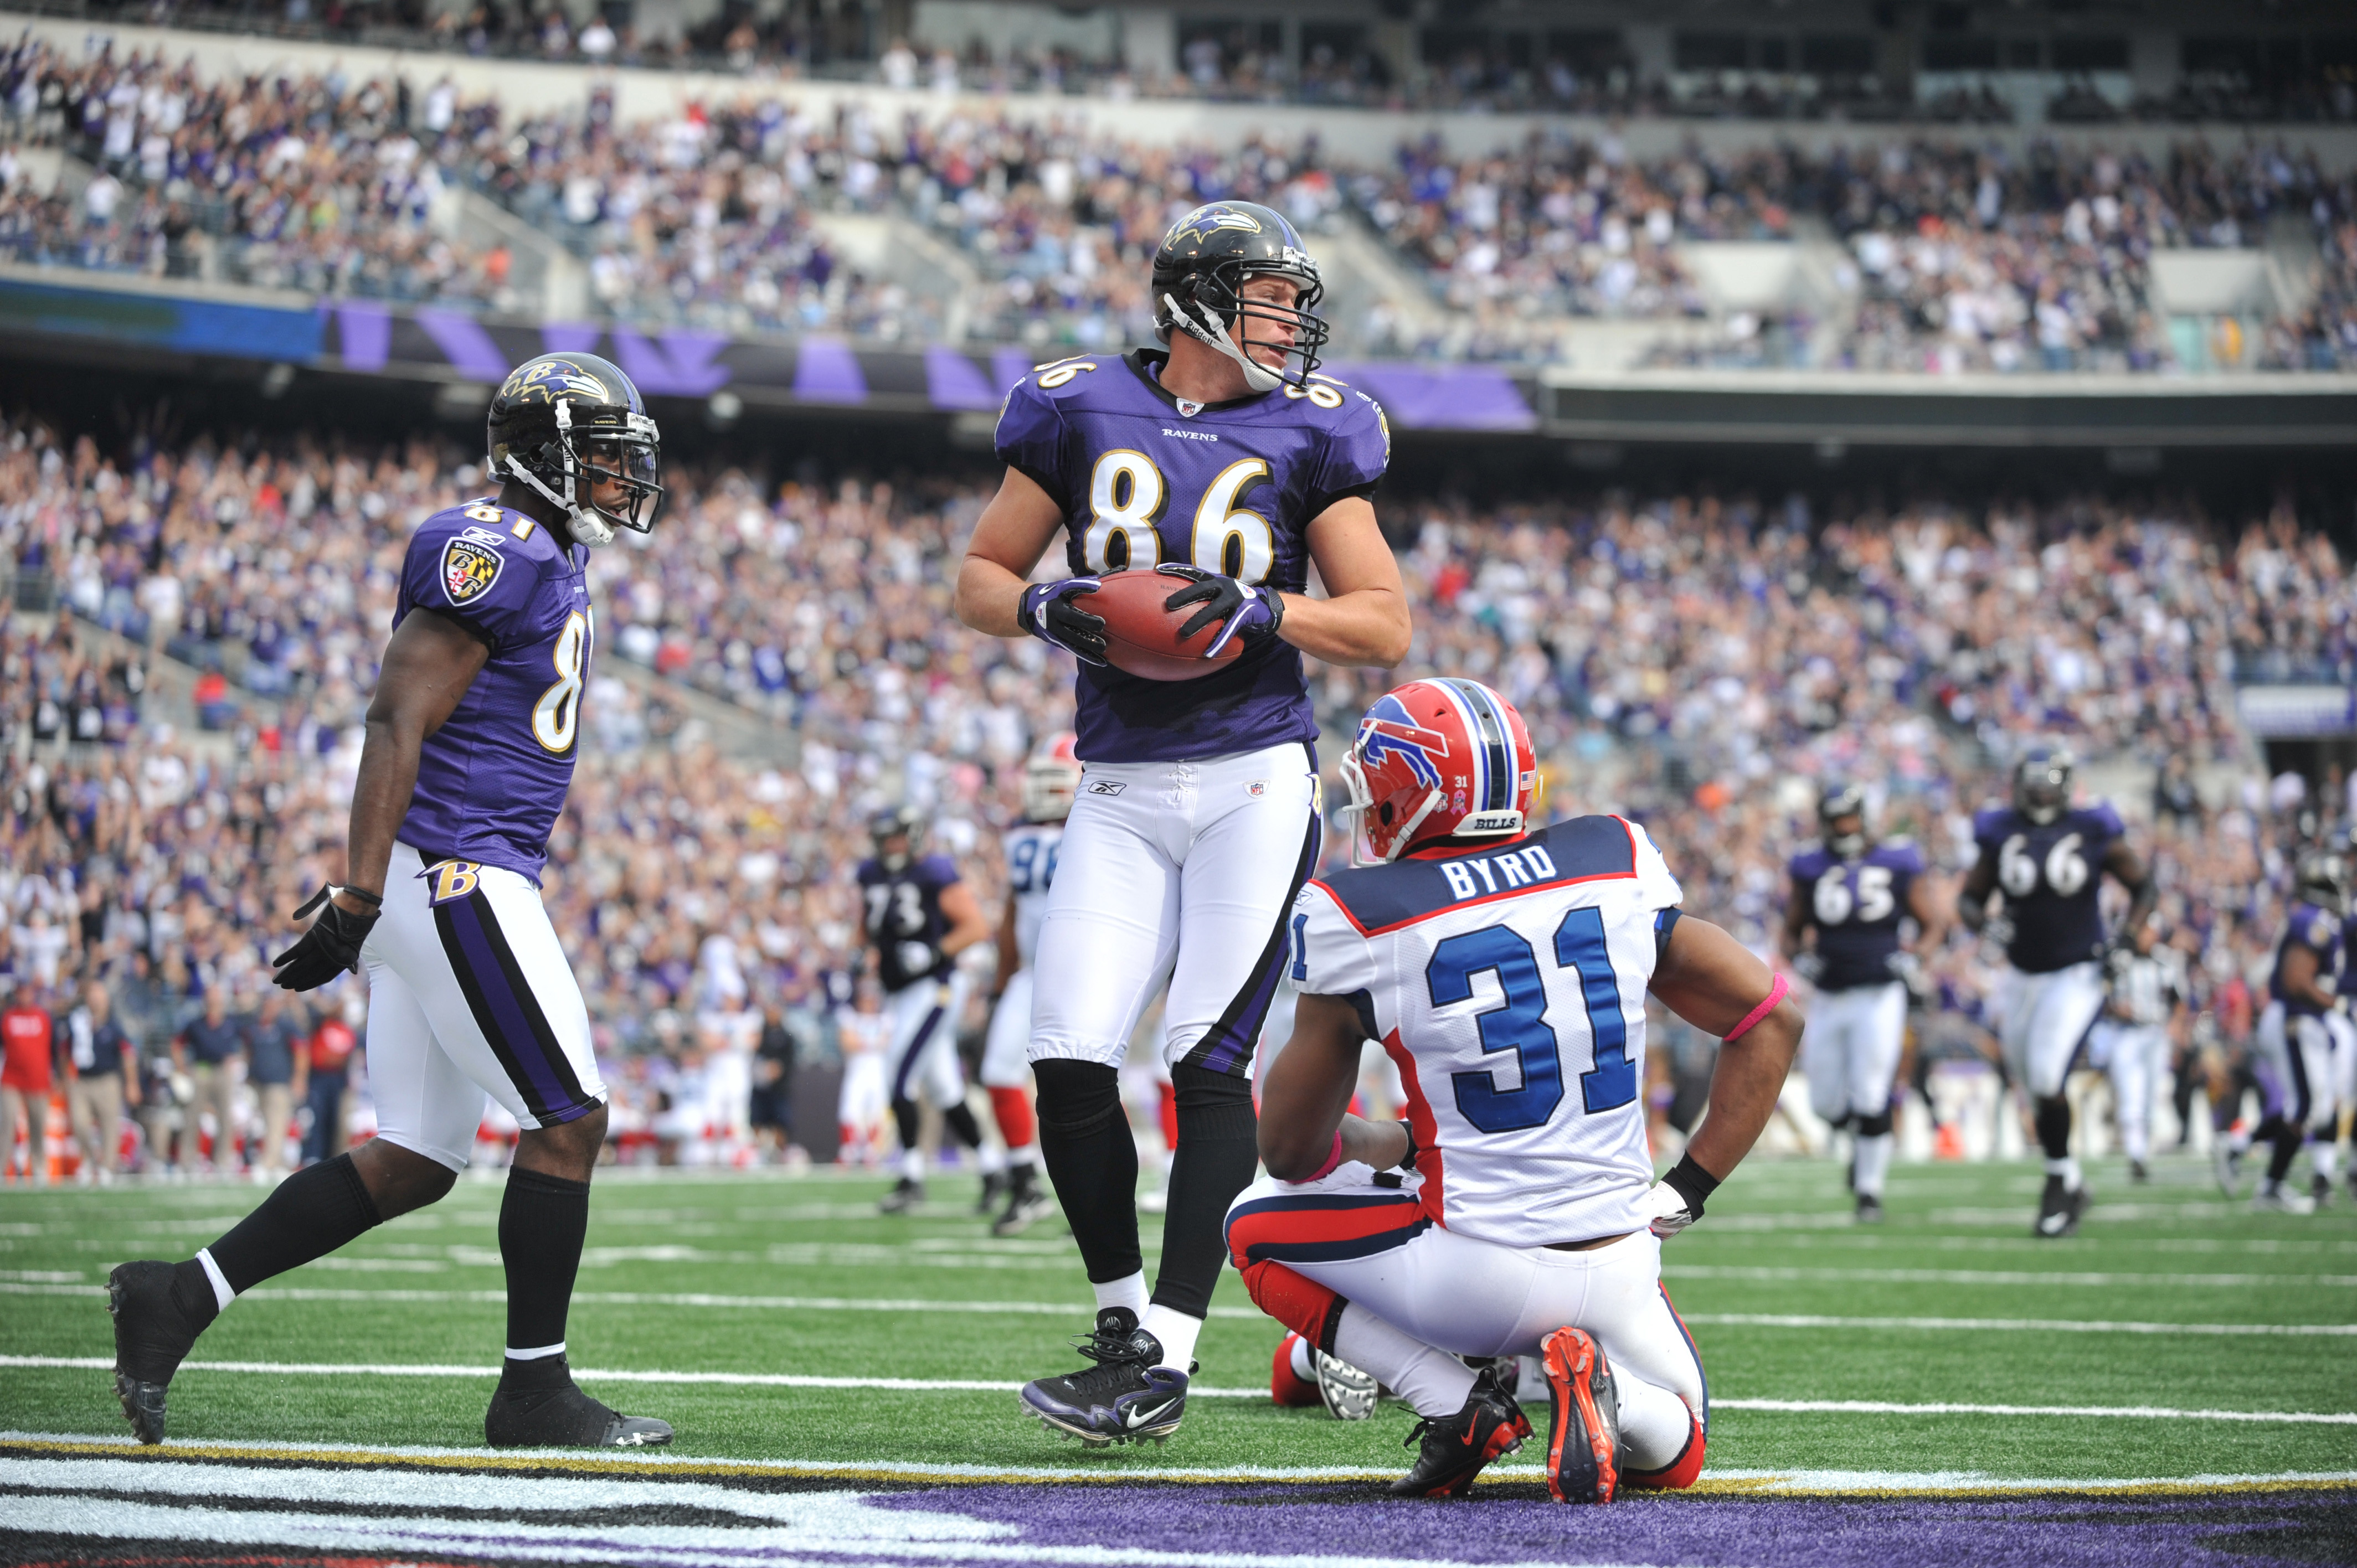 Todd Heap had a great game